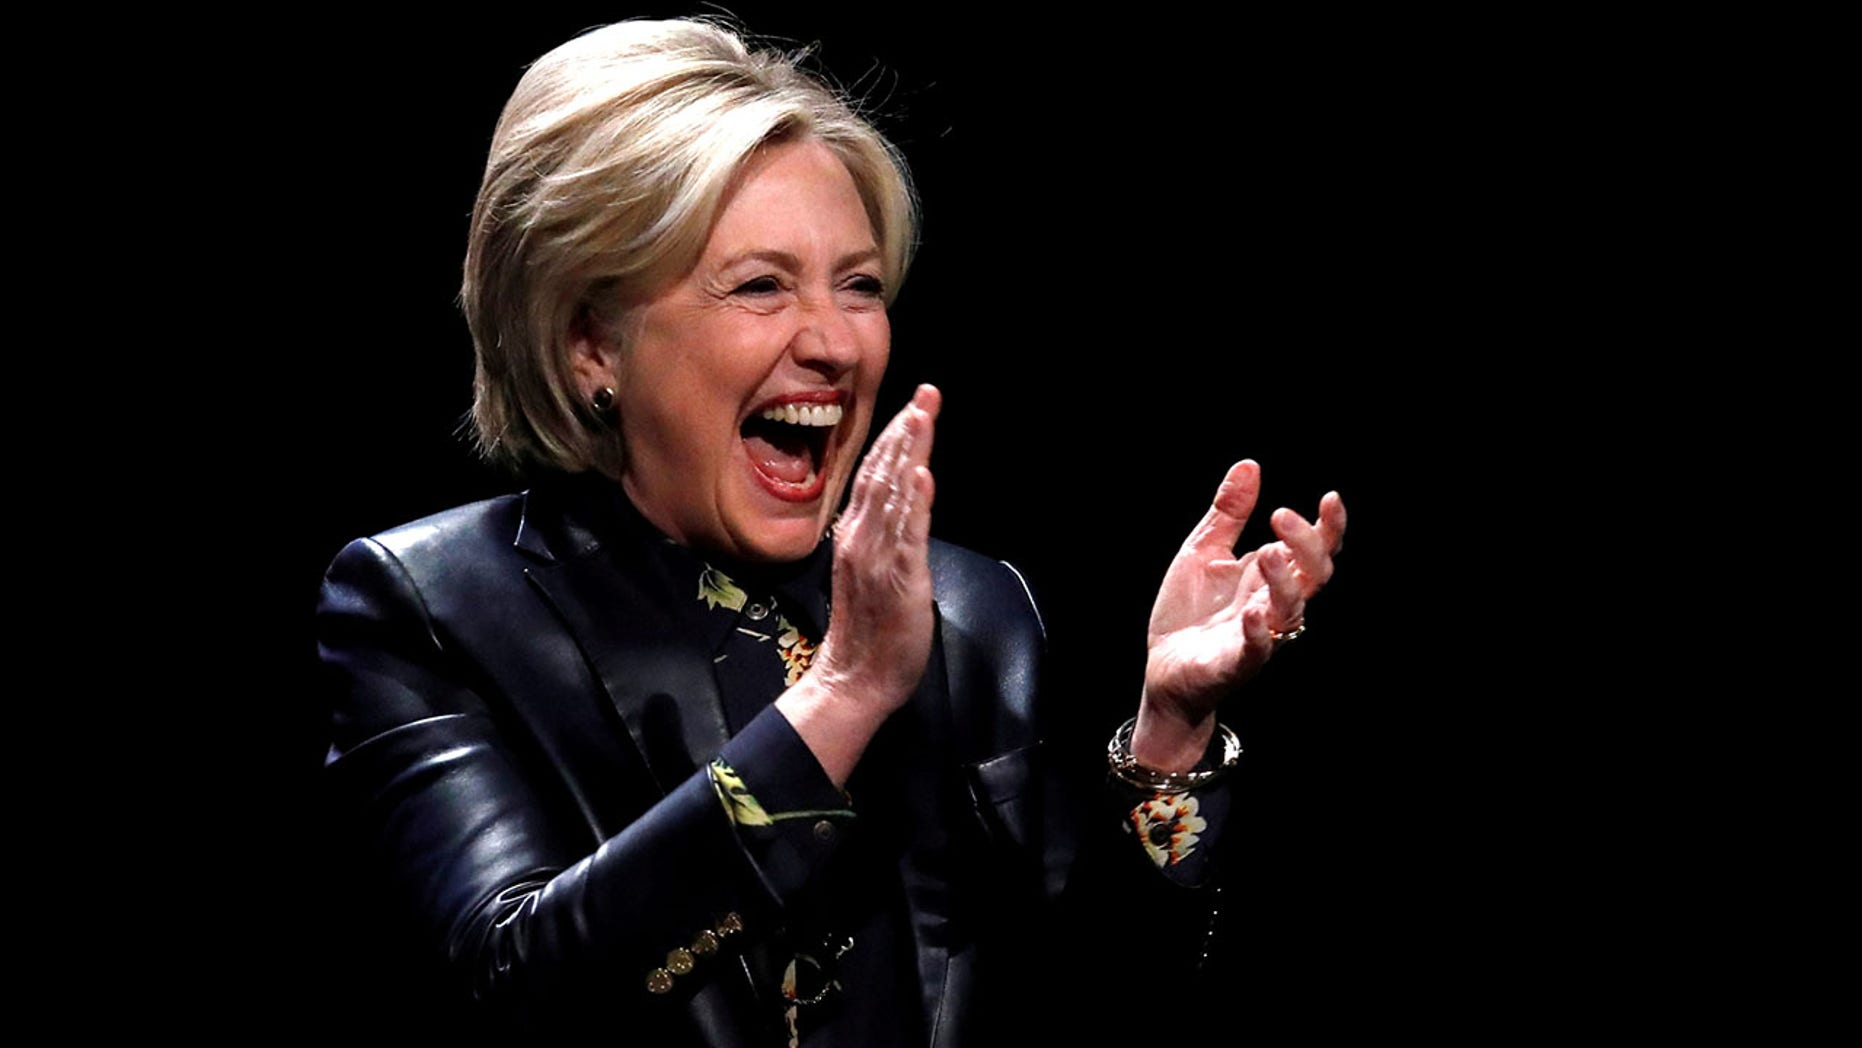 Hillary Clinton thanked supporters for their feminism and their activism on Friday night.